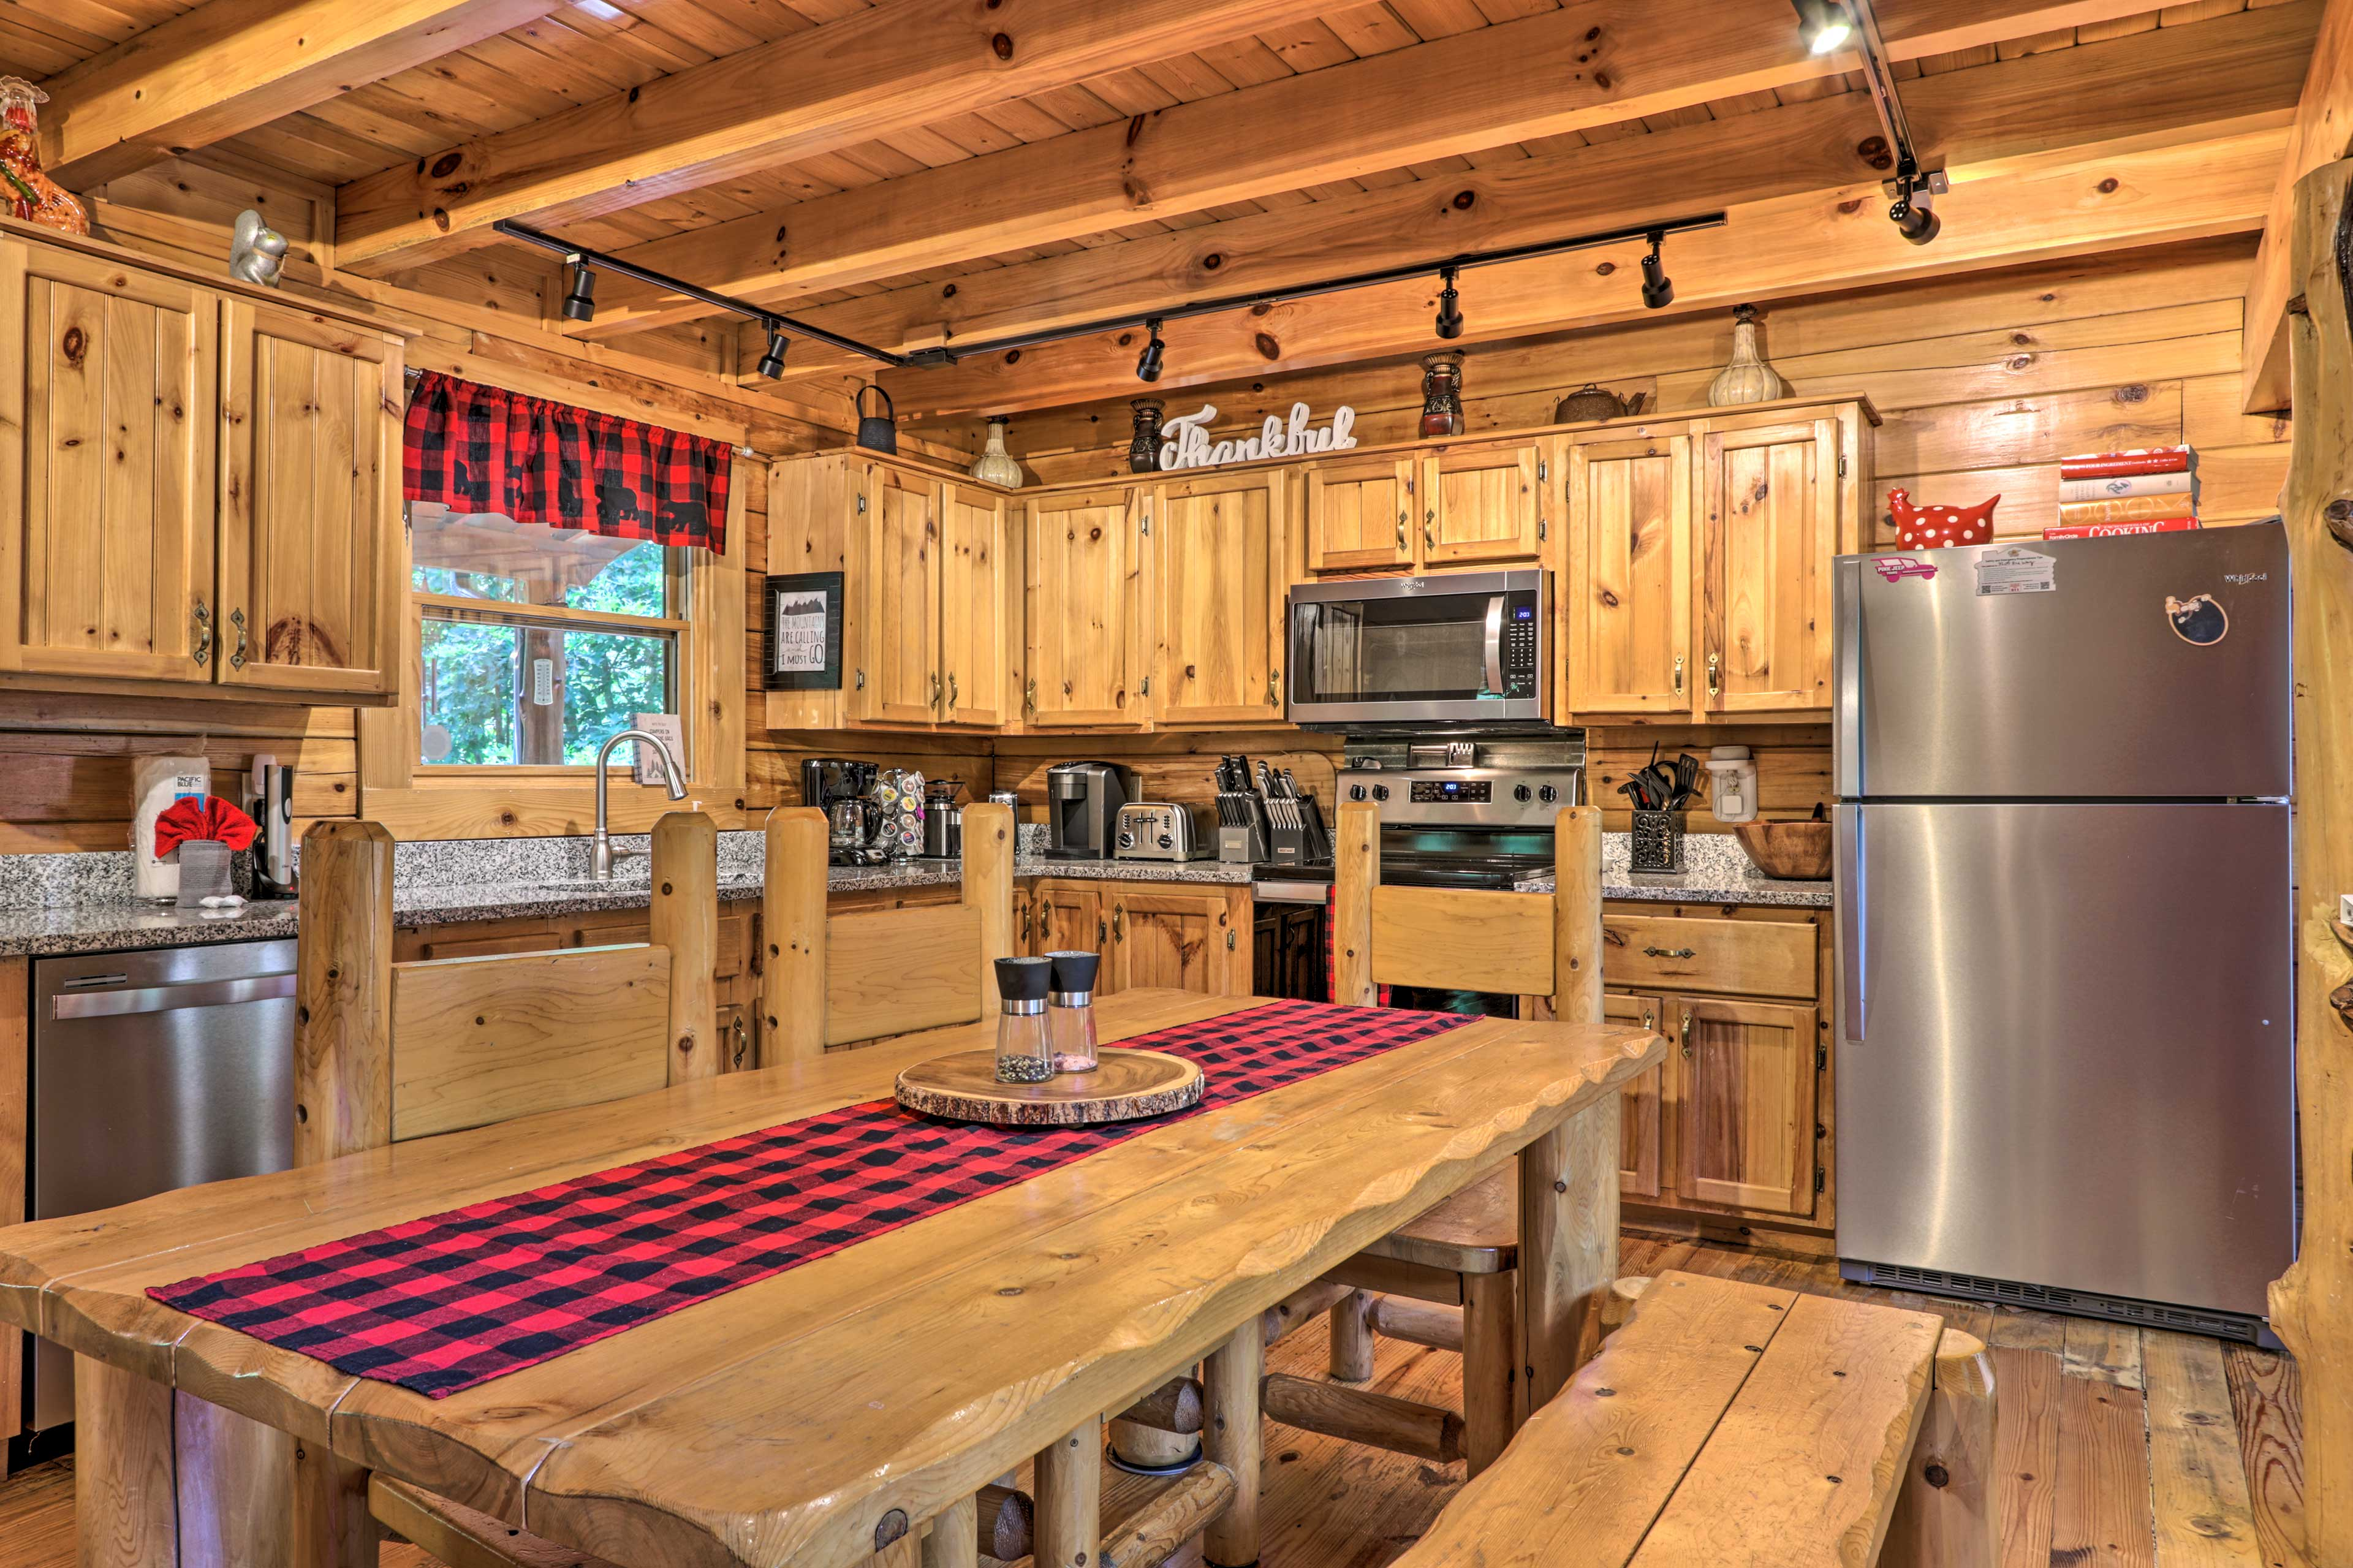 Enjoy a family meal around the log dining table.